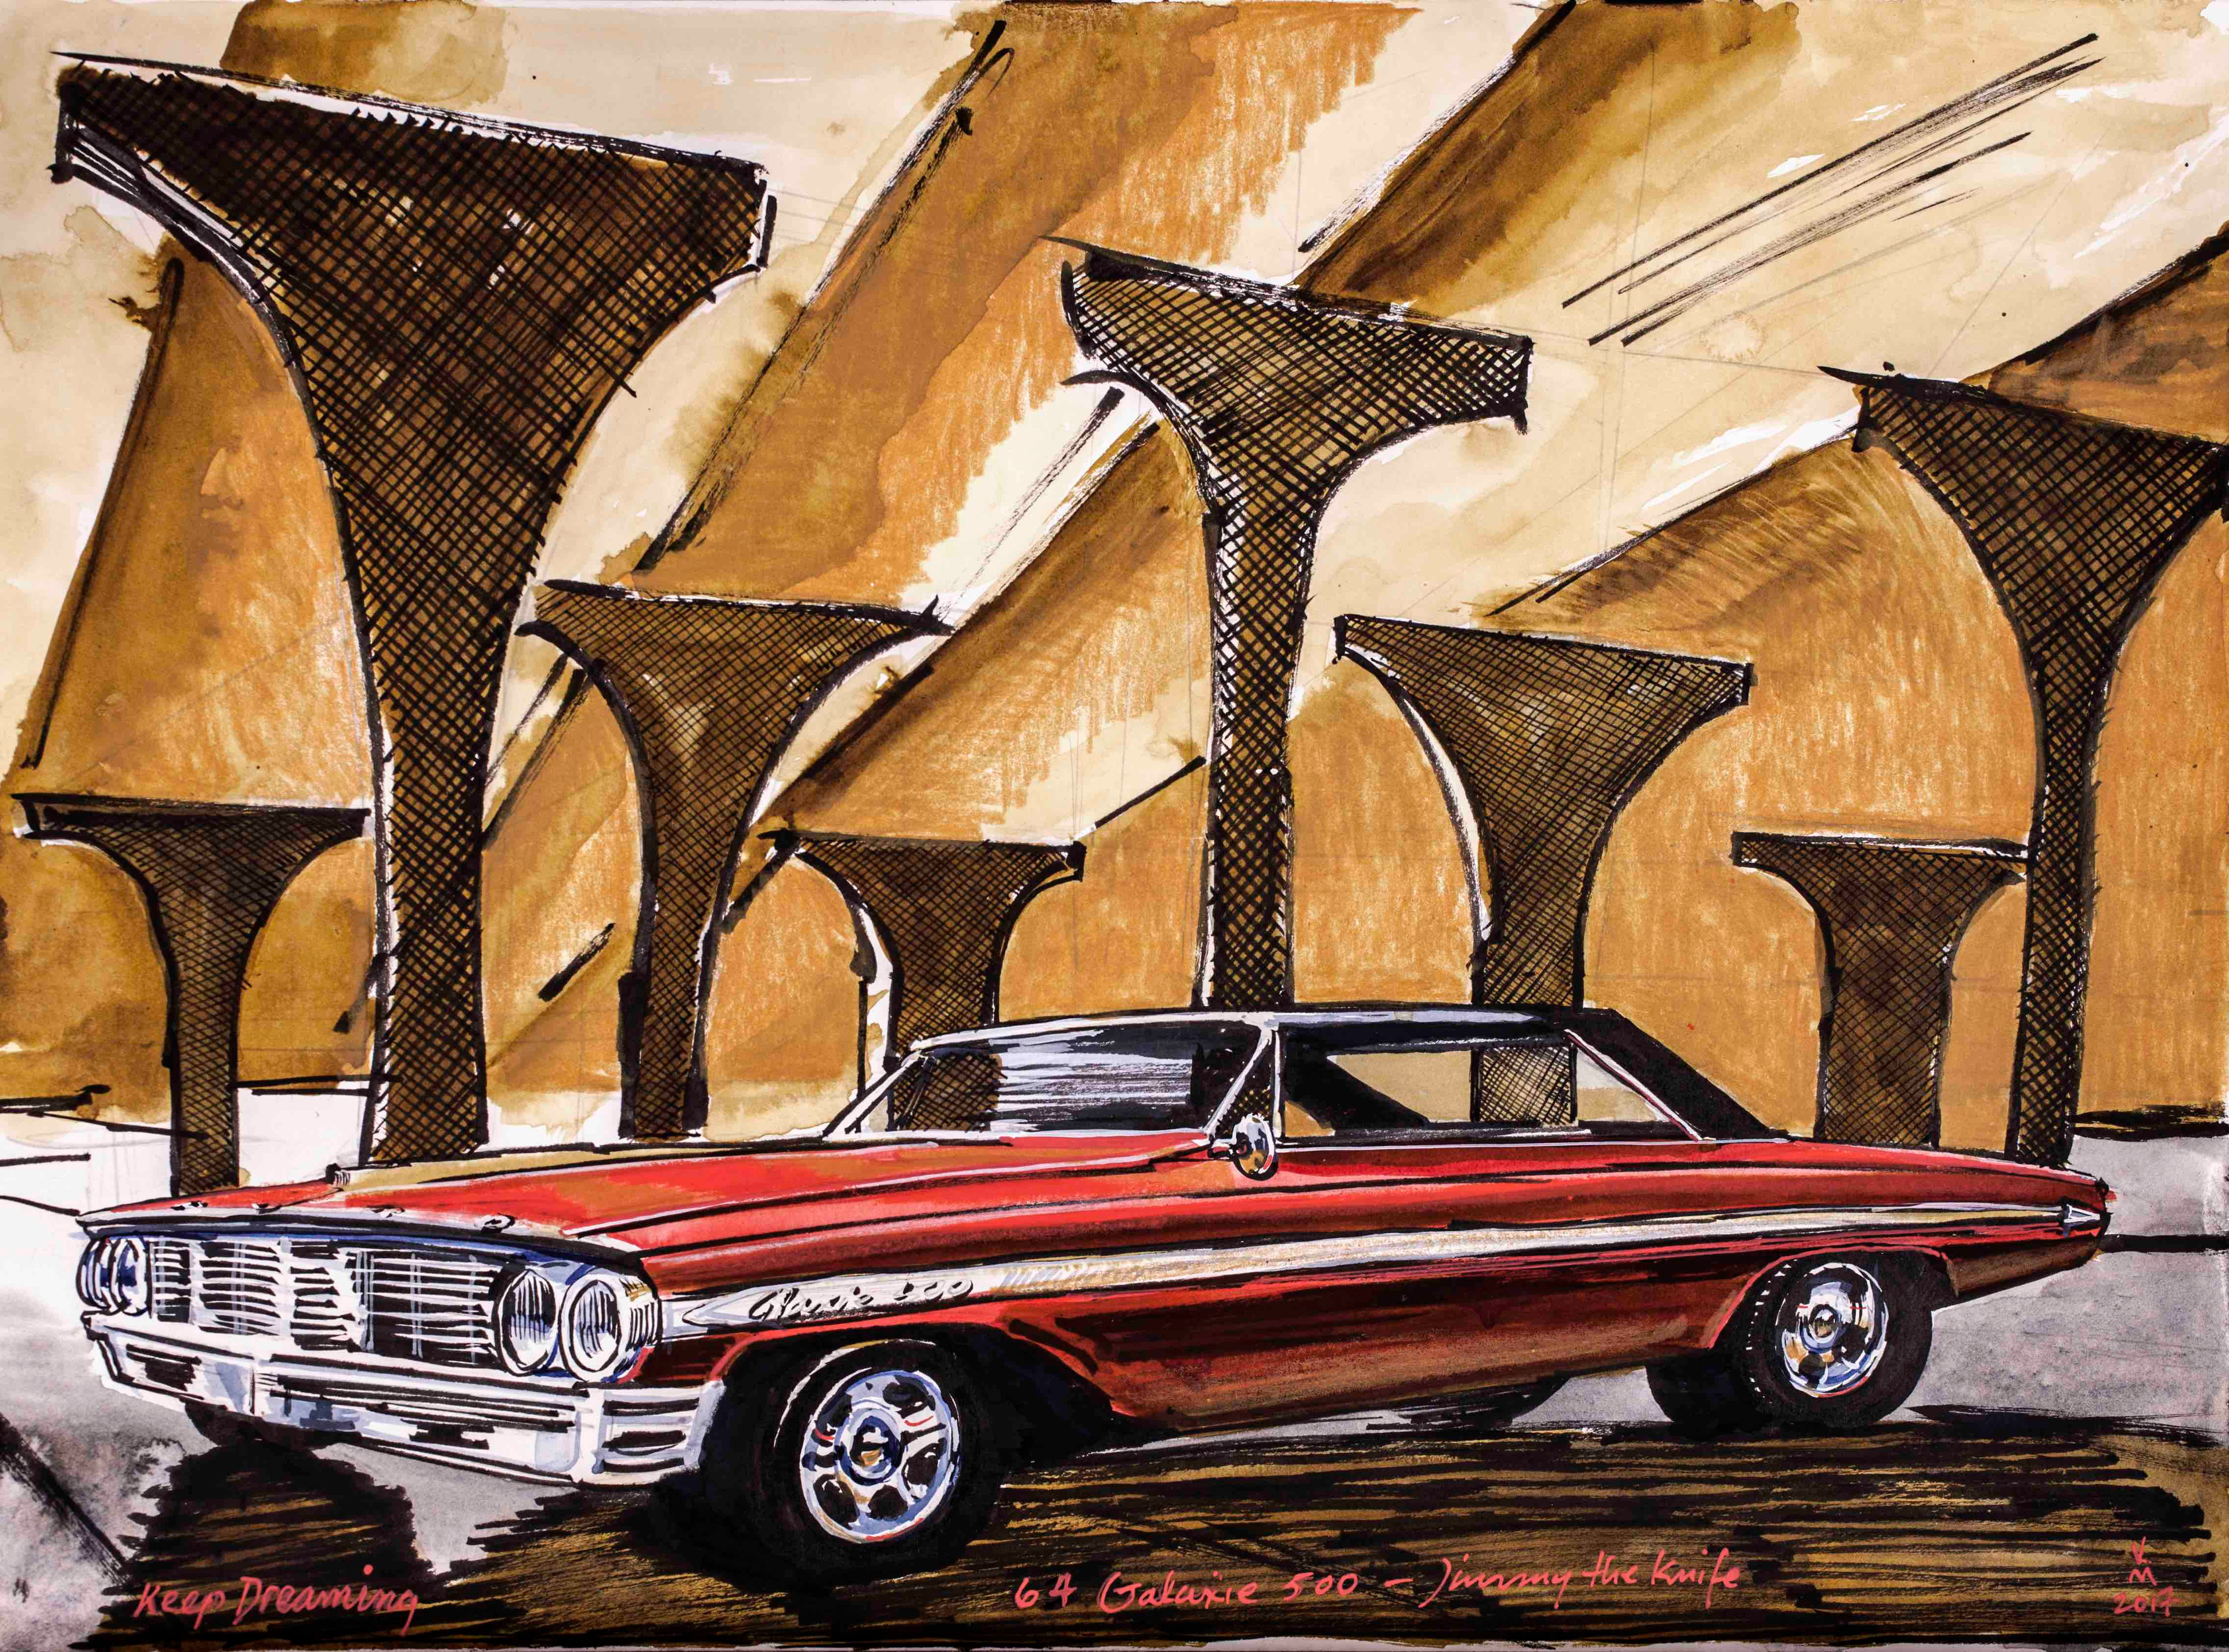 60's muscle, FORD Galaxie 500.